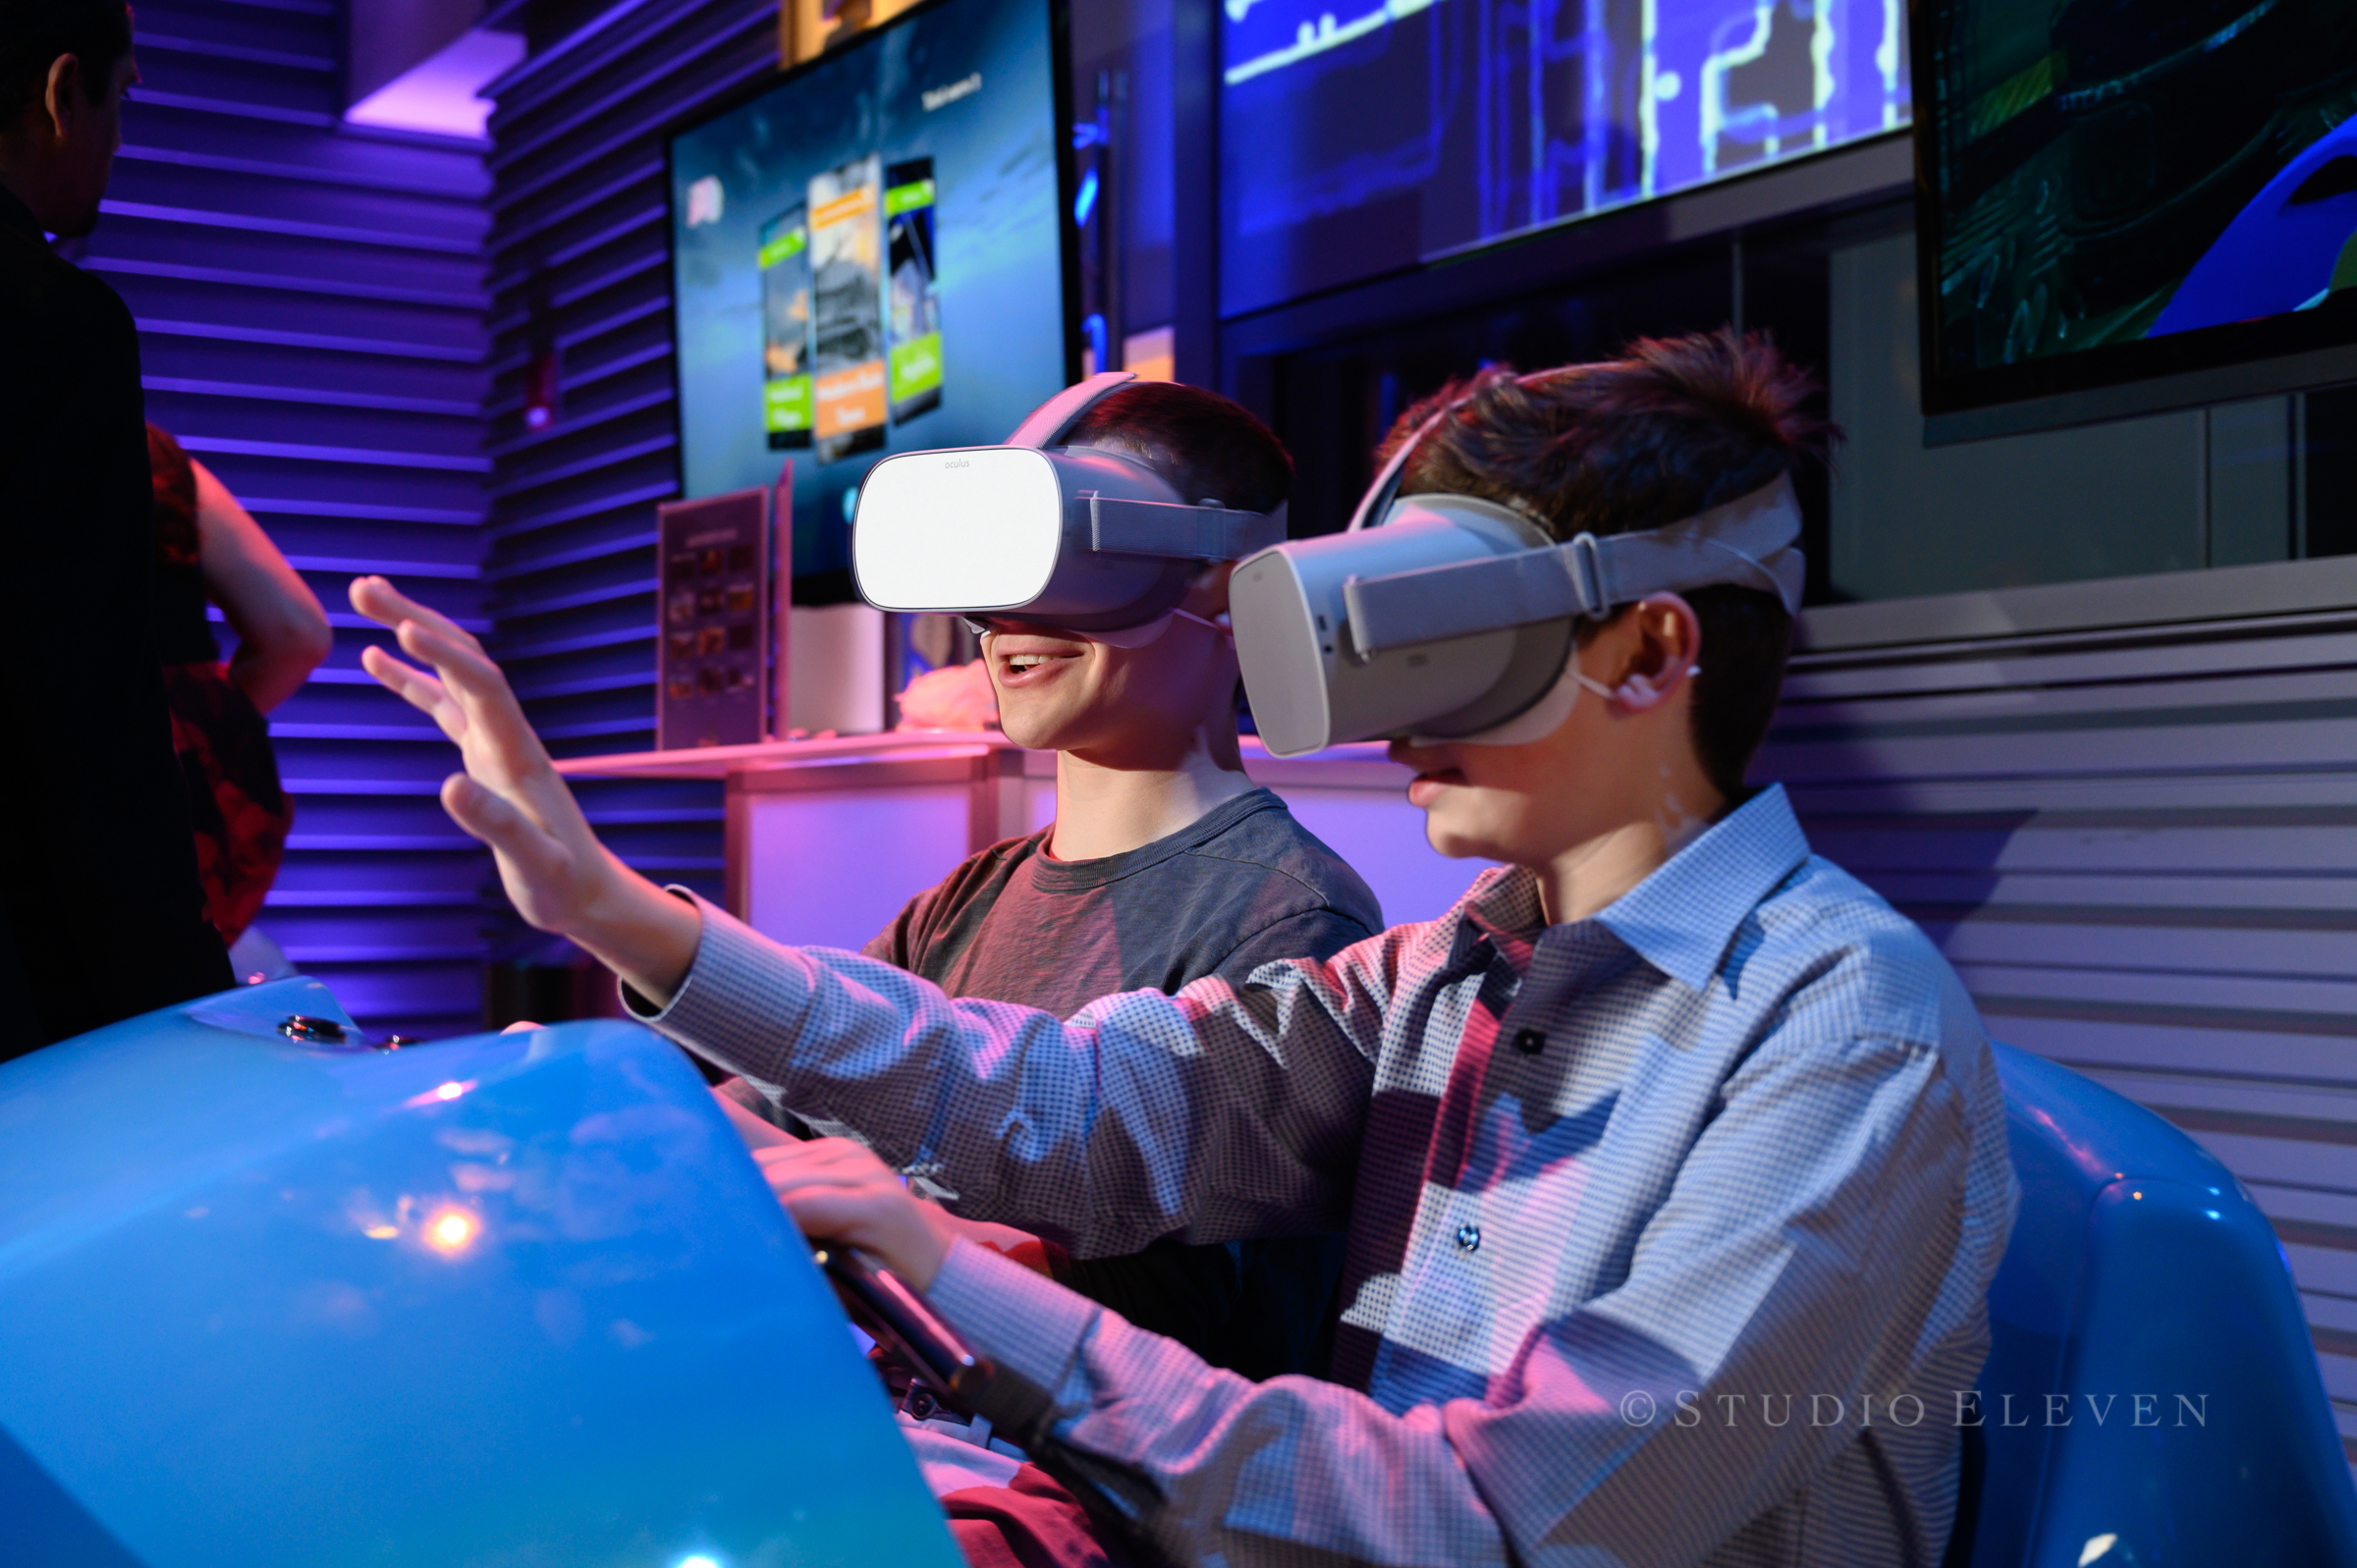 Creative Event Services Virtual Reality